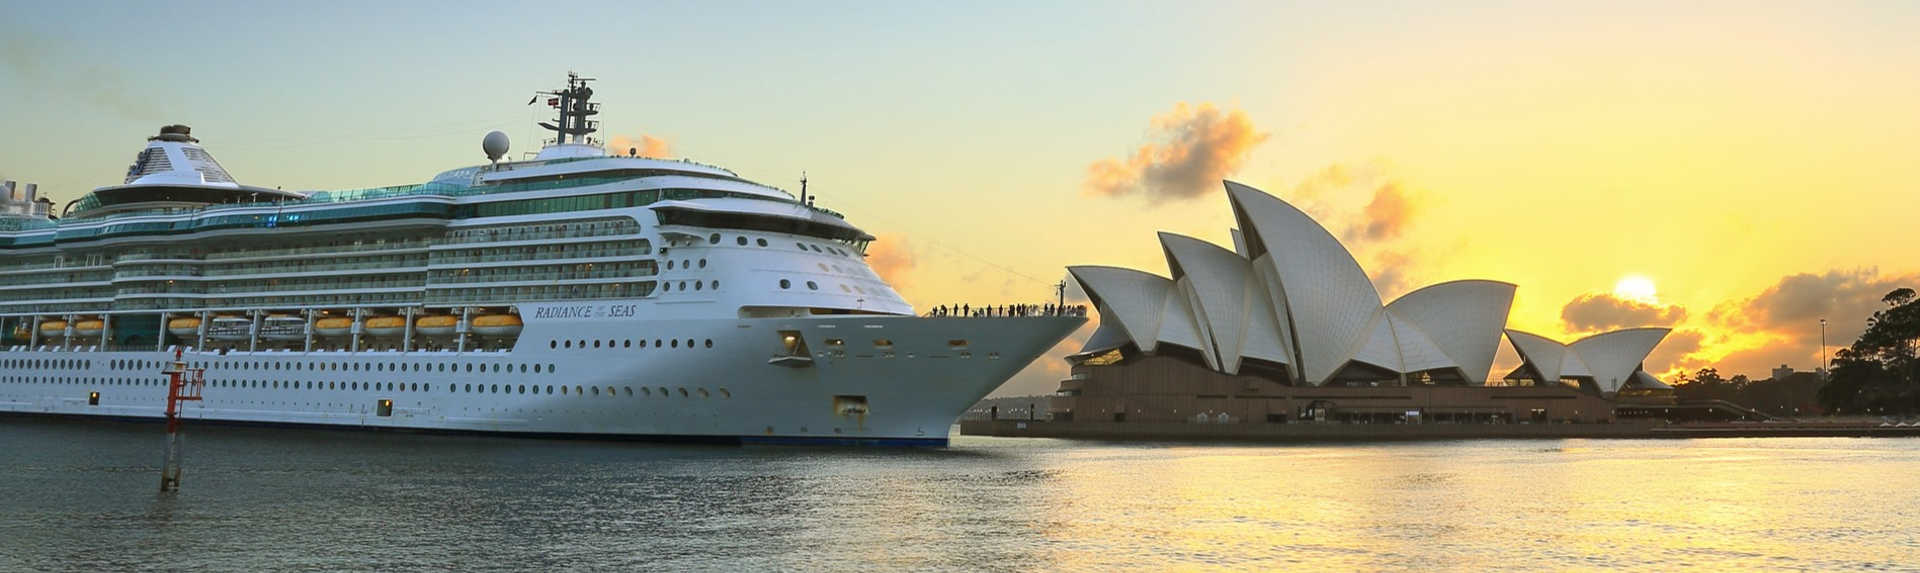 What should you not miss in Sydney?